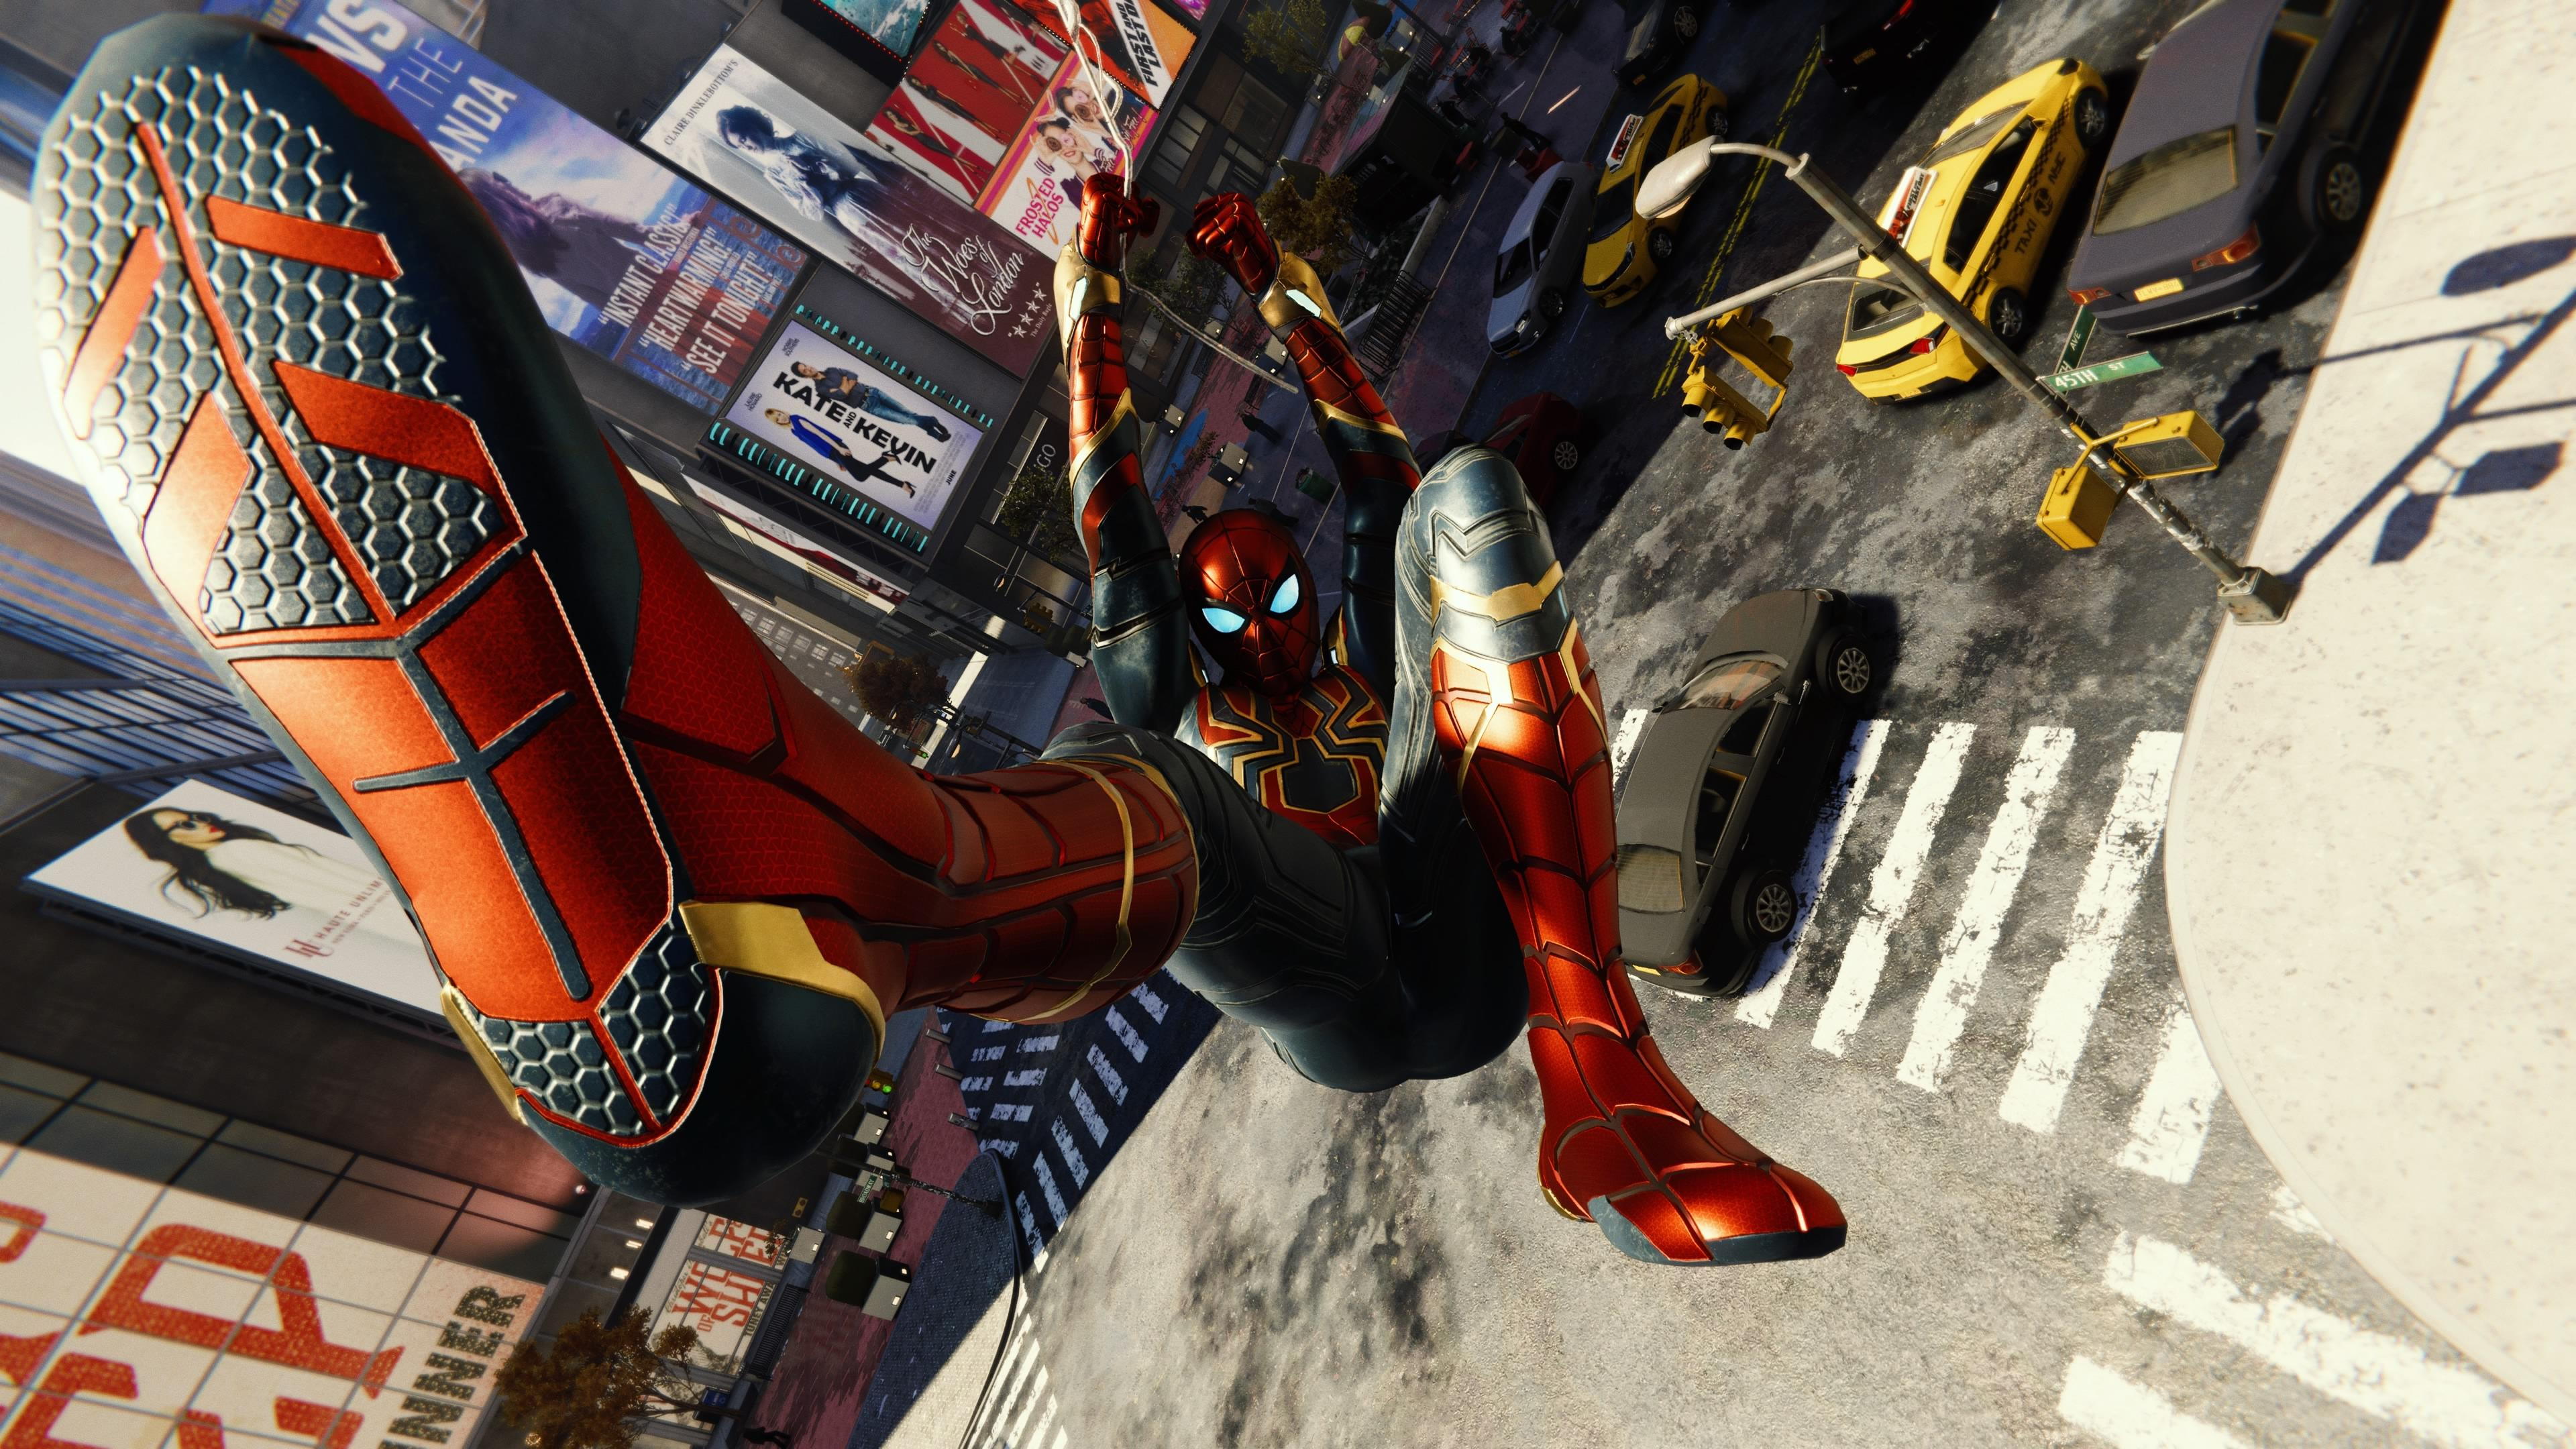 spiderman iron suit shooting web 1537692526 - Spiderman Iron Suit Shooting Web - supervillain wallpapers, spiderman ps4 wallpapers, ps games wallpapers, hd-wallpapers, games wallpapers, 4k-wallpapers, 2018 games wallpapers